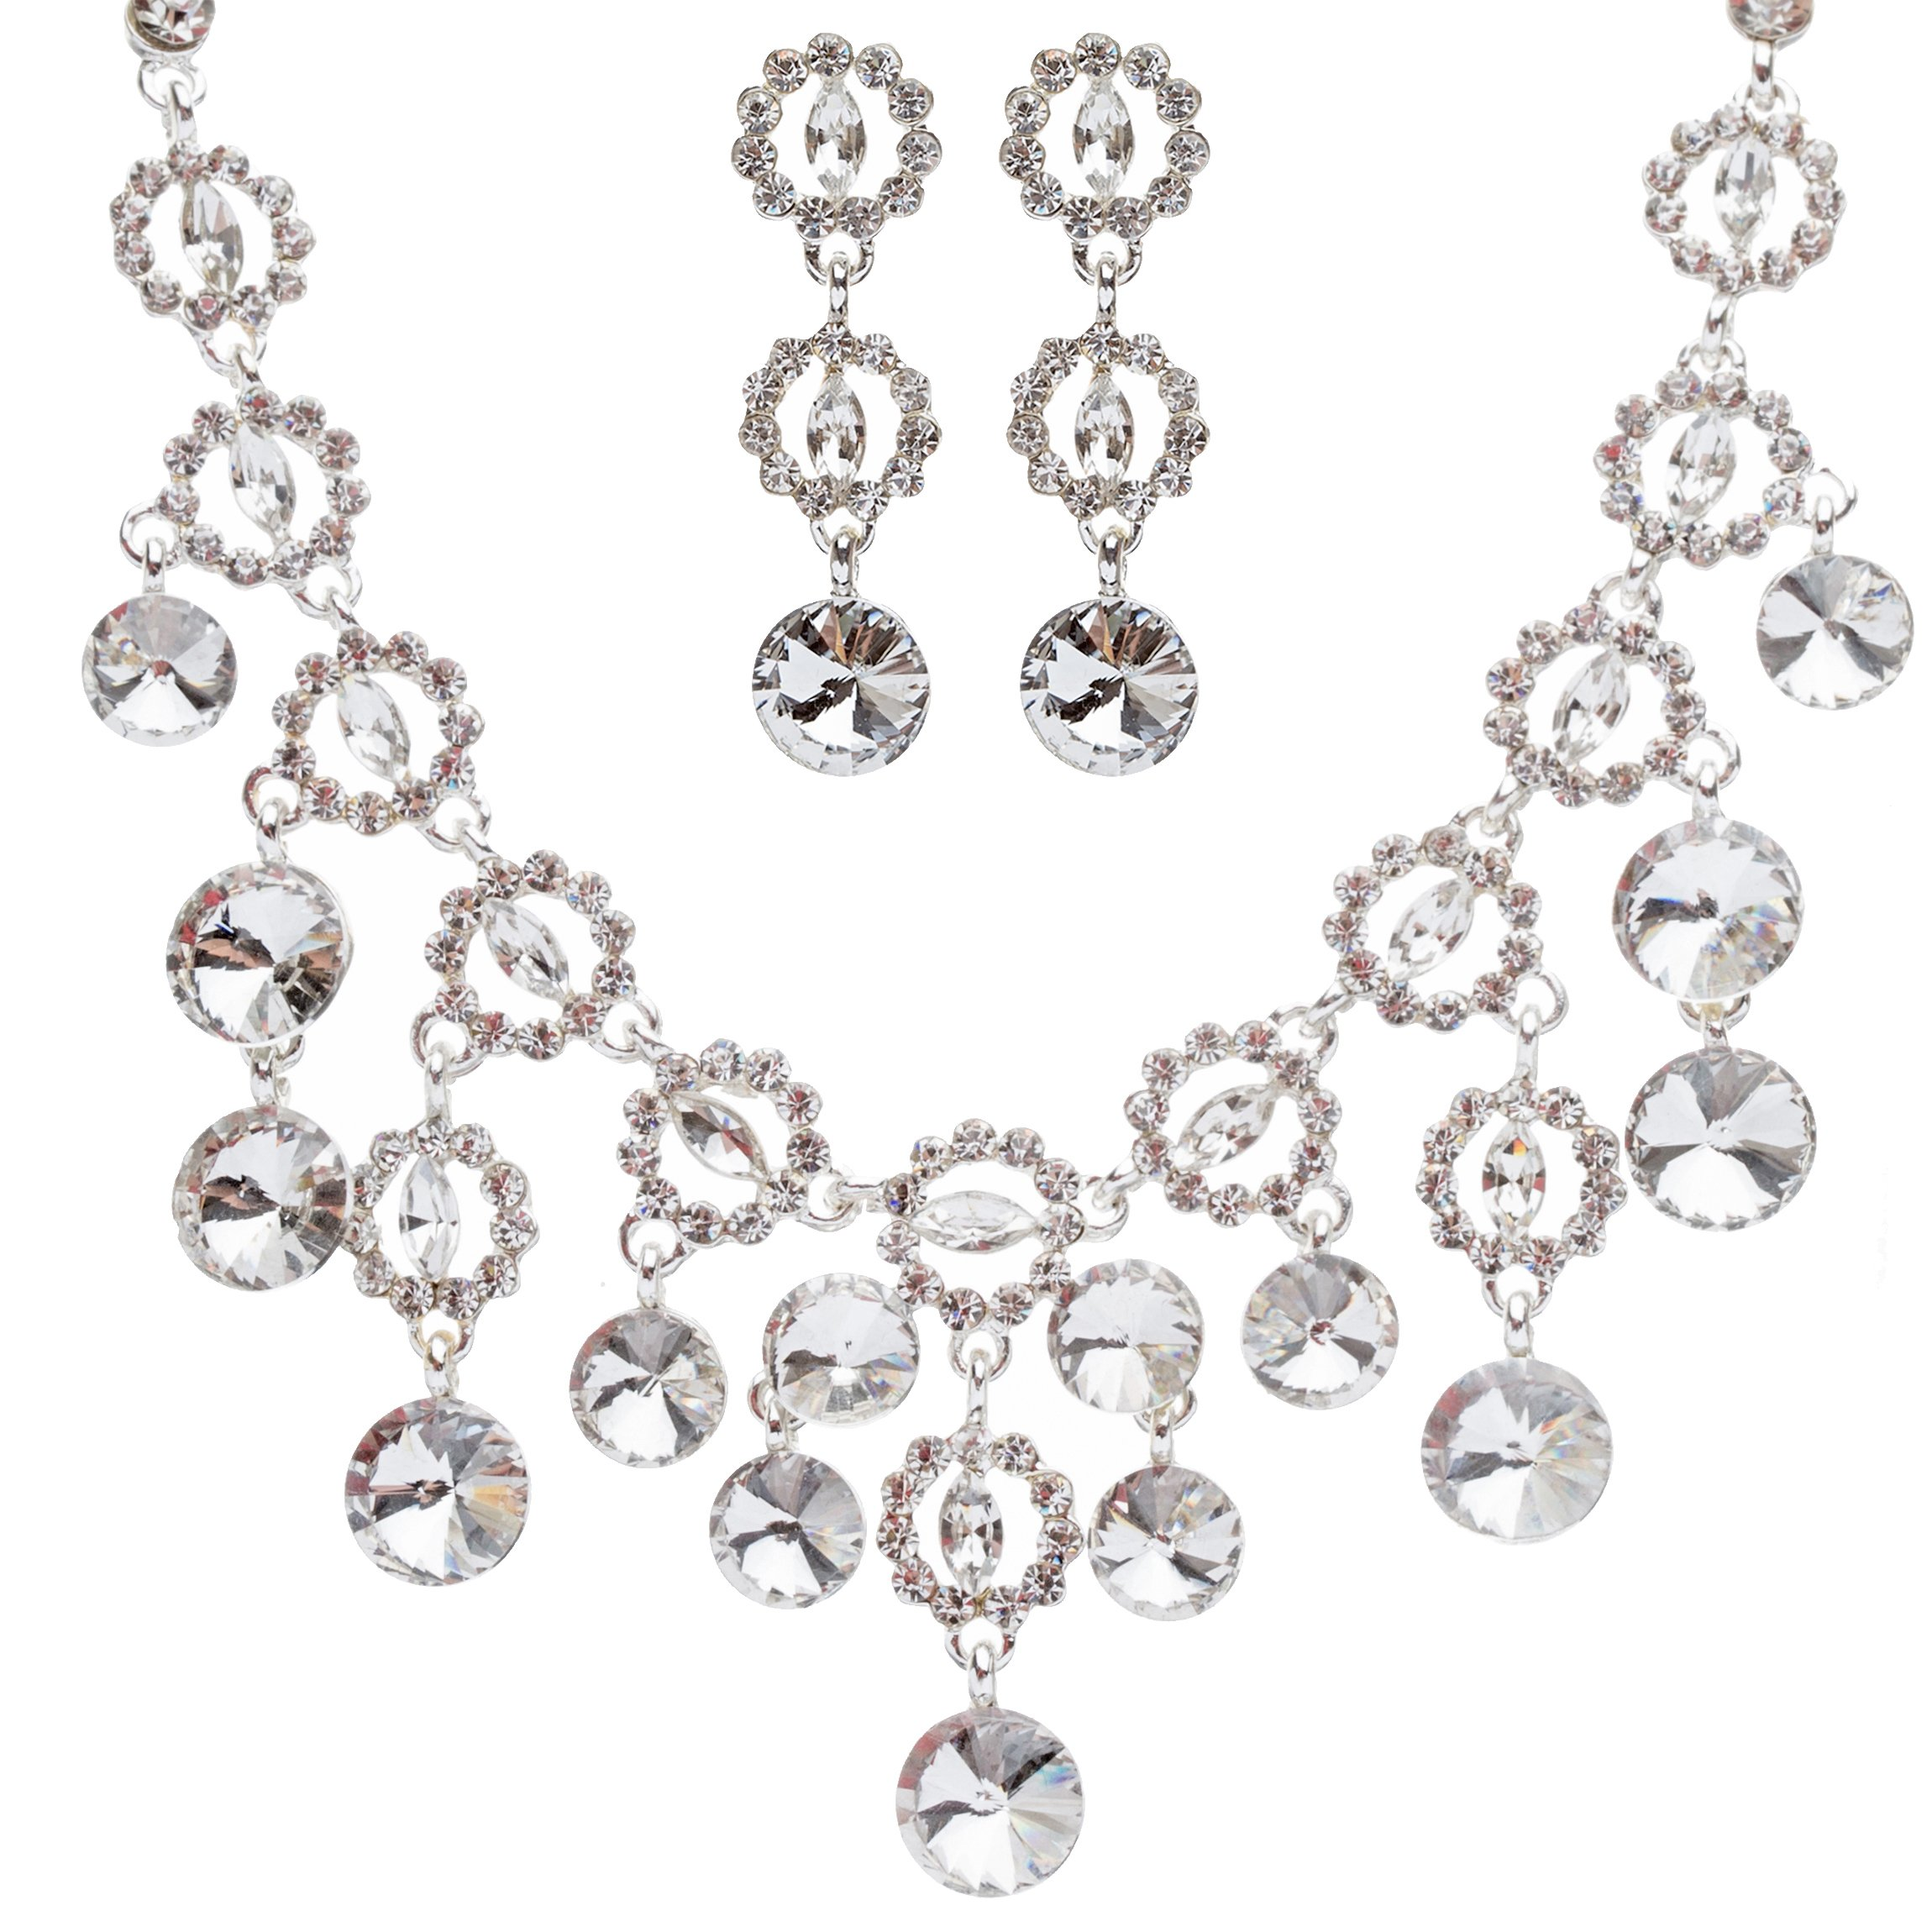 ACCESSORIESFOREVER Bridal Wedding Prom Jewelry Set Crystal Rhinestone Round Faceted Glittering Necklace